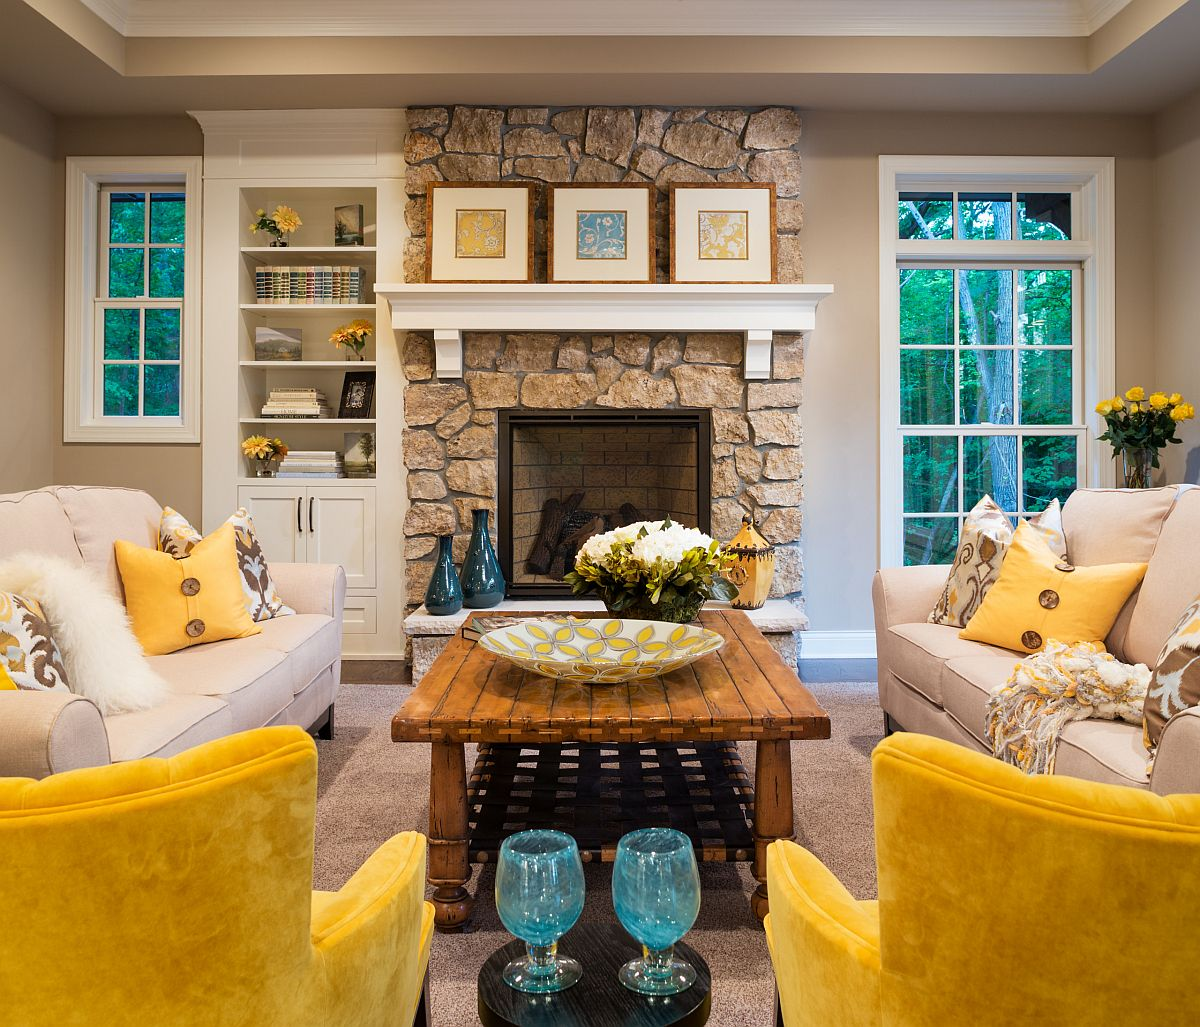 Easy ways to add yellow to any room come with smart accents placed in a curated, neutral setting